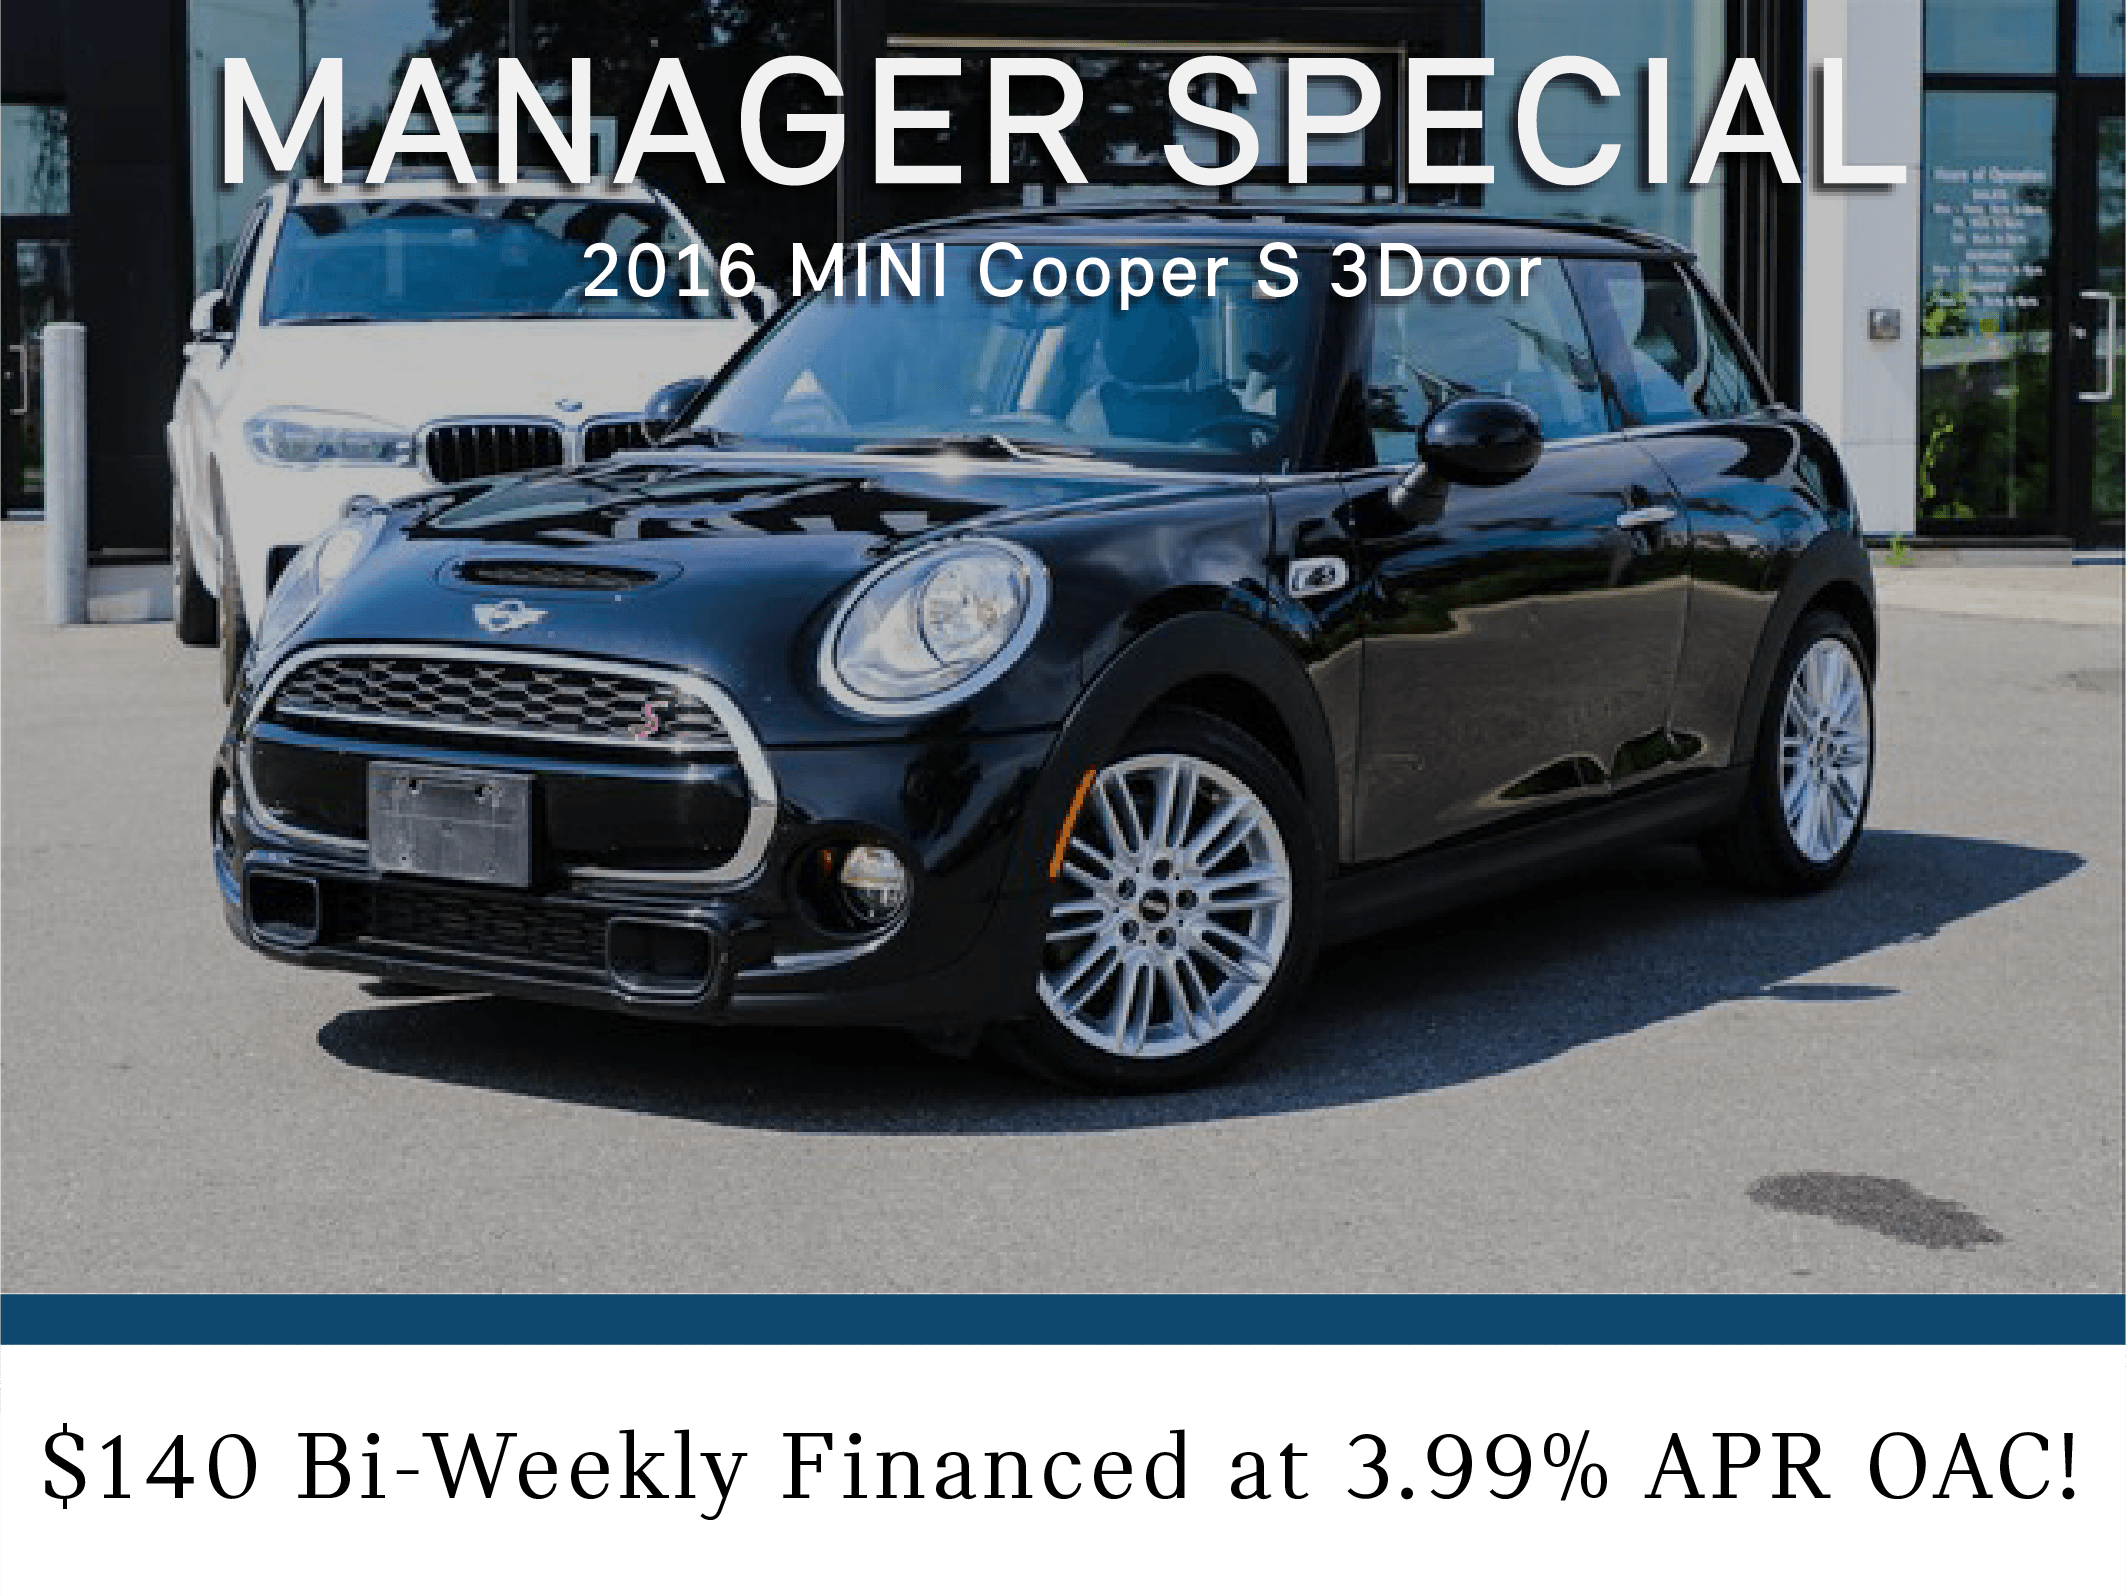 Manager Special- 2016 Mini Cooper S 3Door